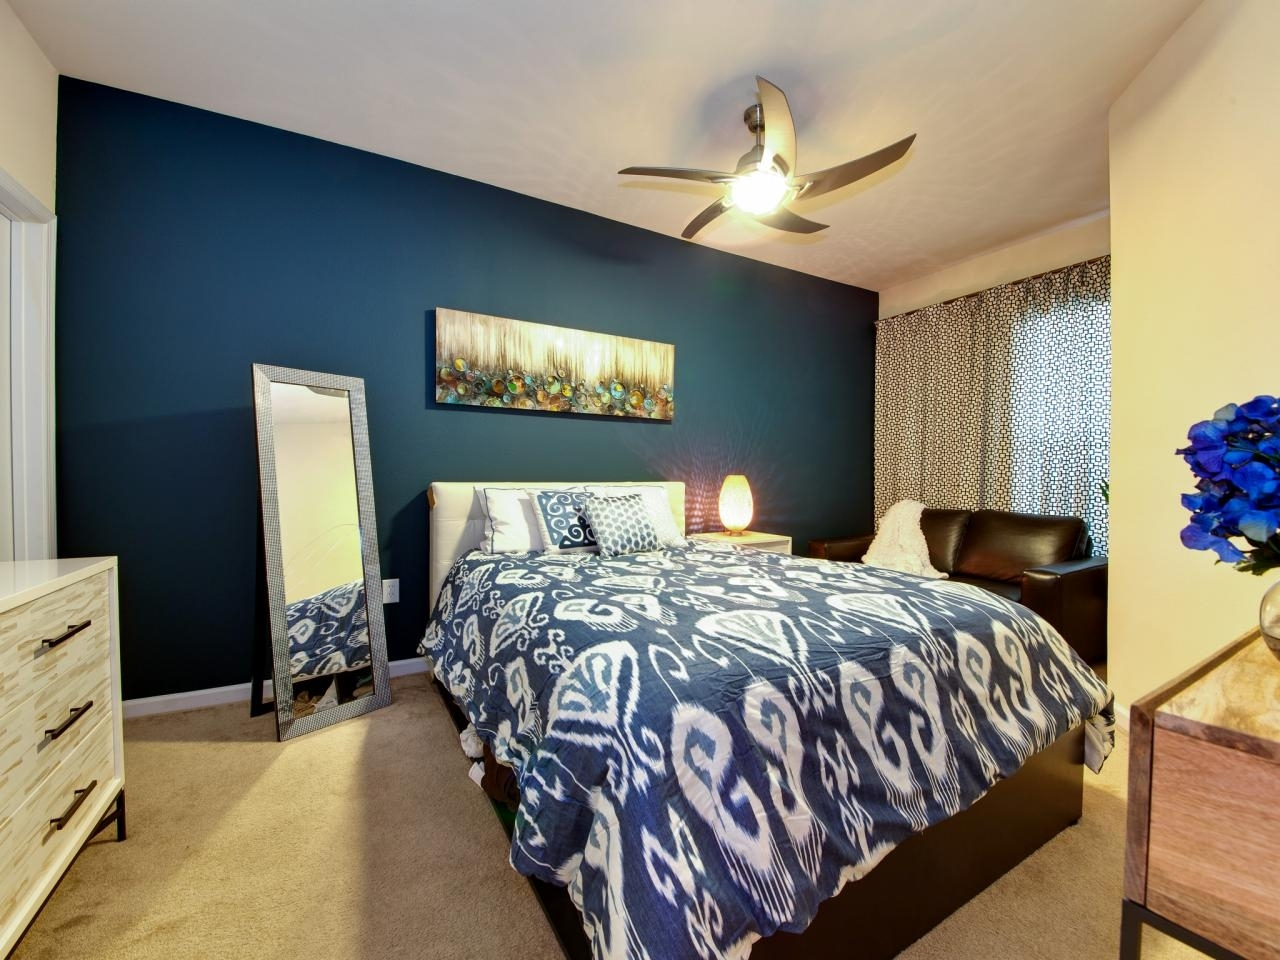 Bedroom : Incredible Bedroom Design With Dark Blue Accent Wall Within Most Popular Wall Accents Colors For Bedrooms (View 3 of 15)